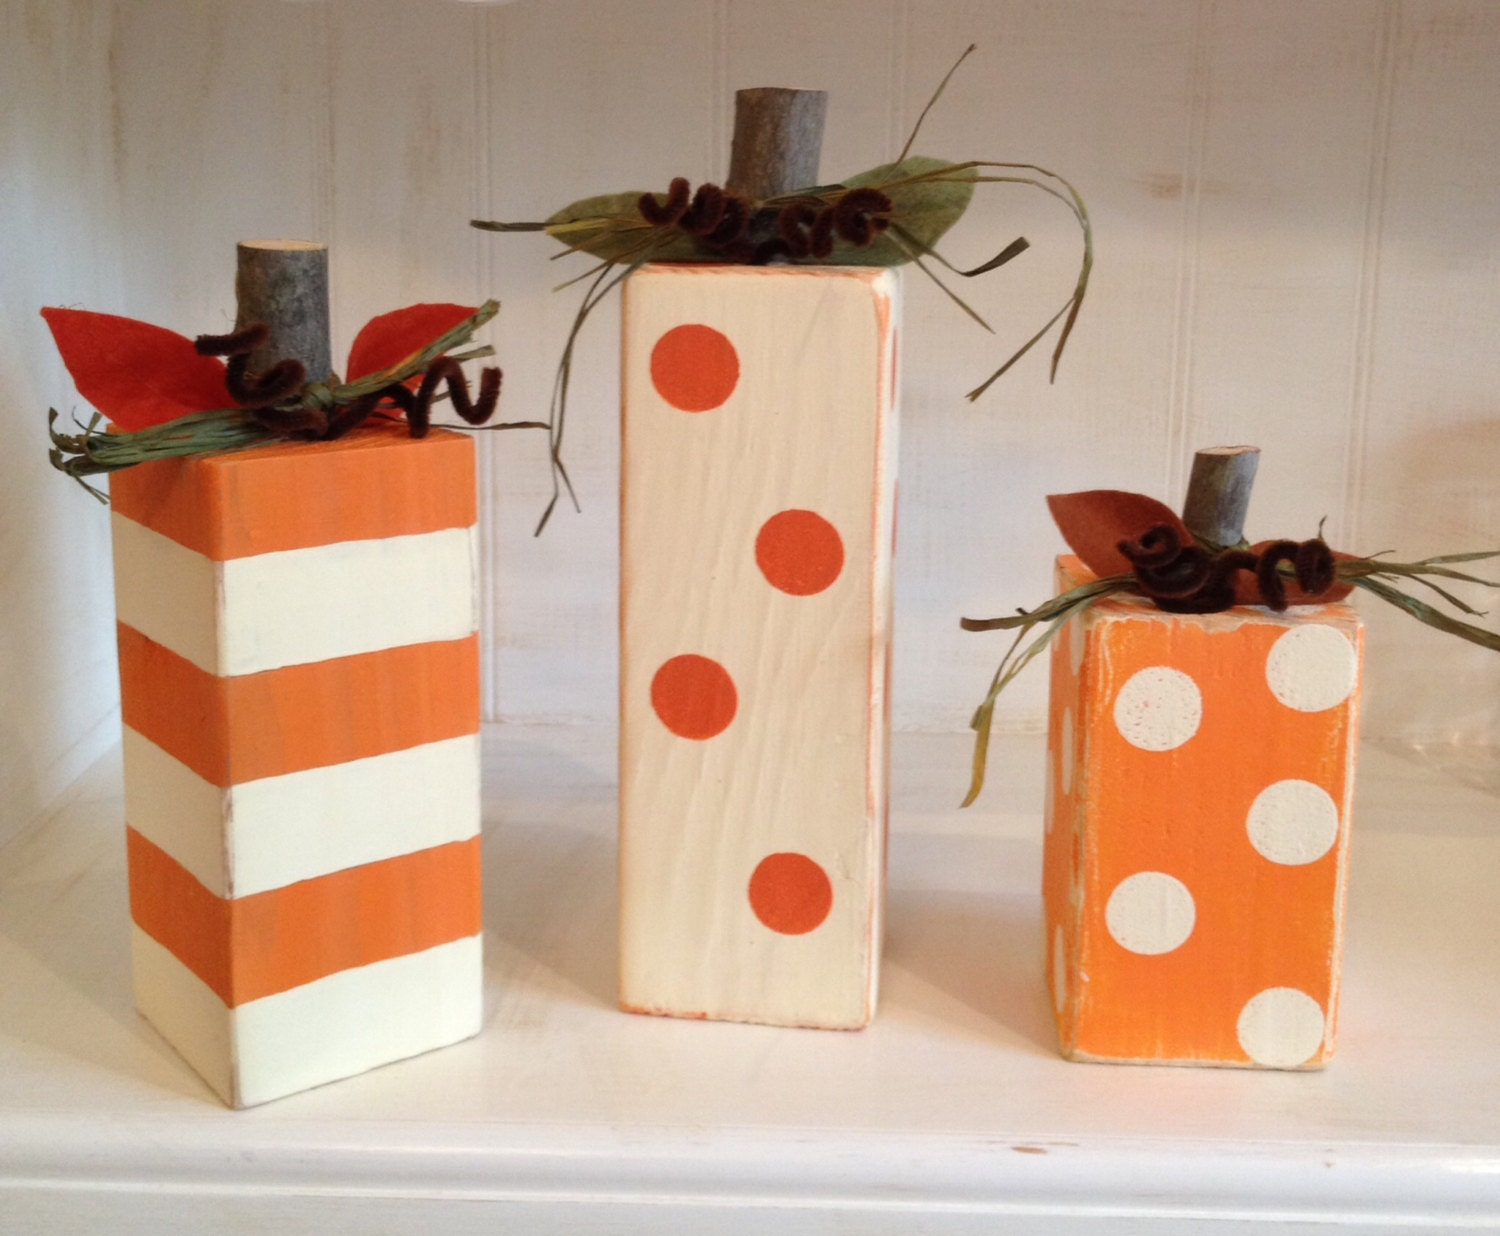 Fall Craft Ideas Using Wood Crate